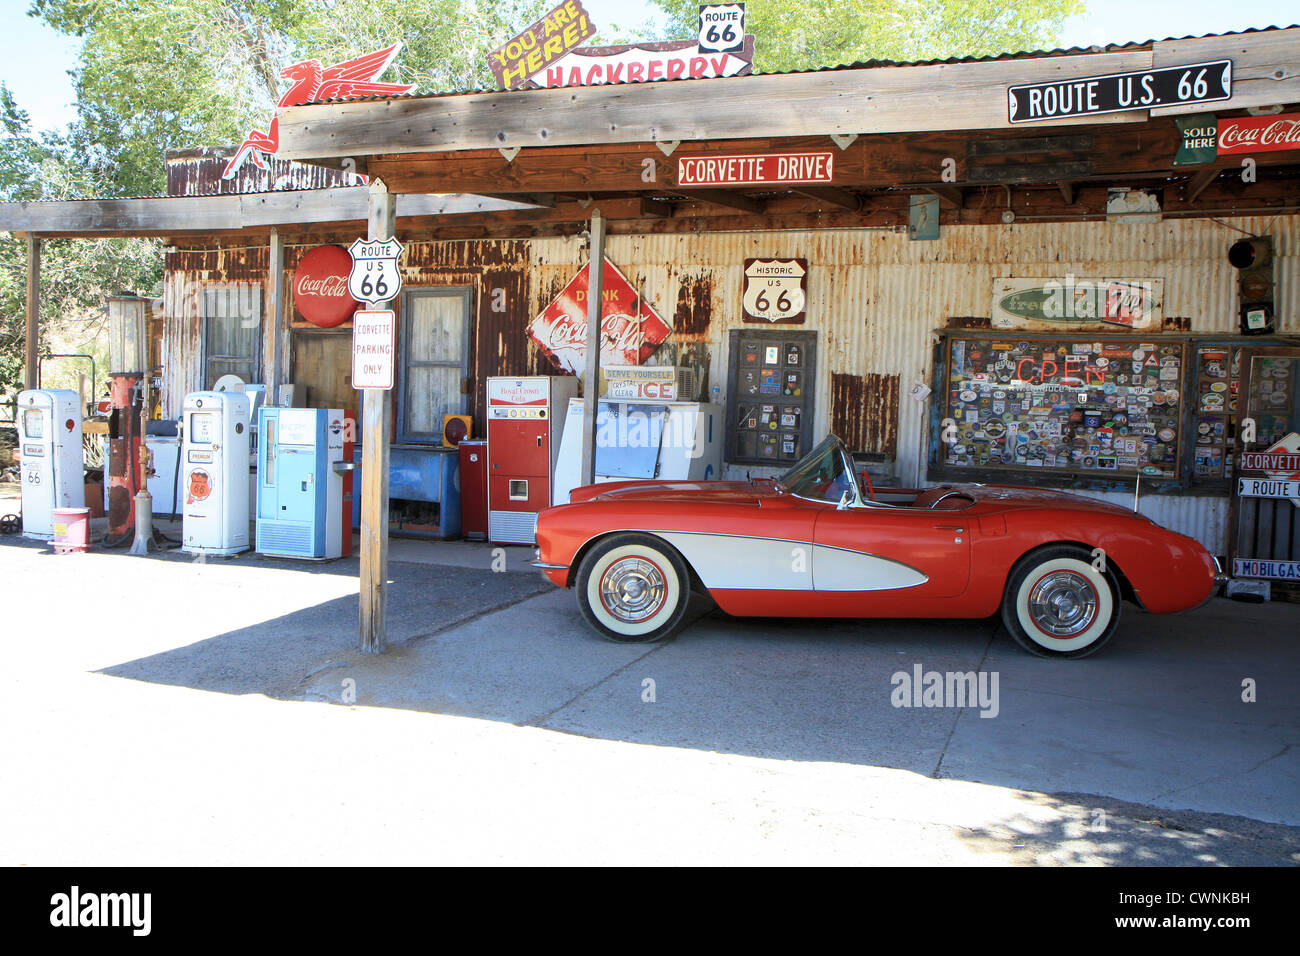 Santa Paula Chevrolet >> Vintage Gas Station Stock Photos & Vintage Gas Station Stock Images - Alamy